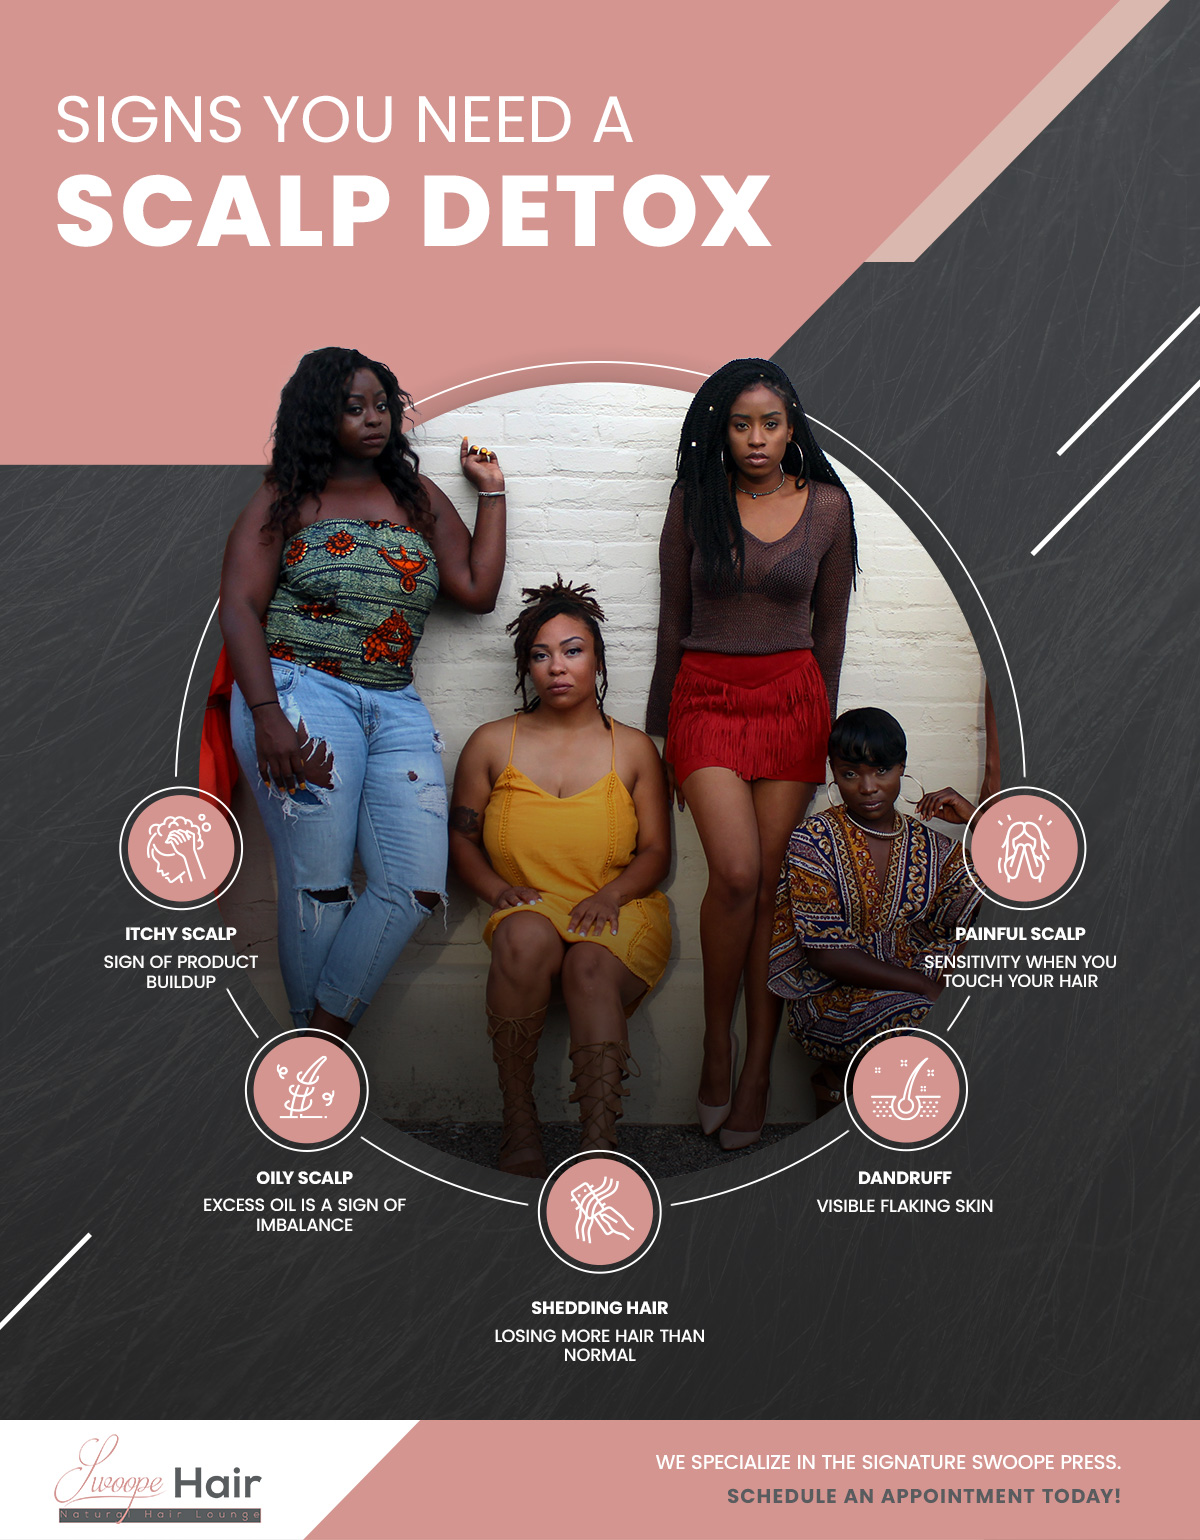 signs you need a scalp detox infographic